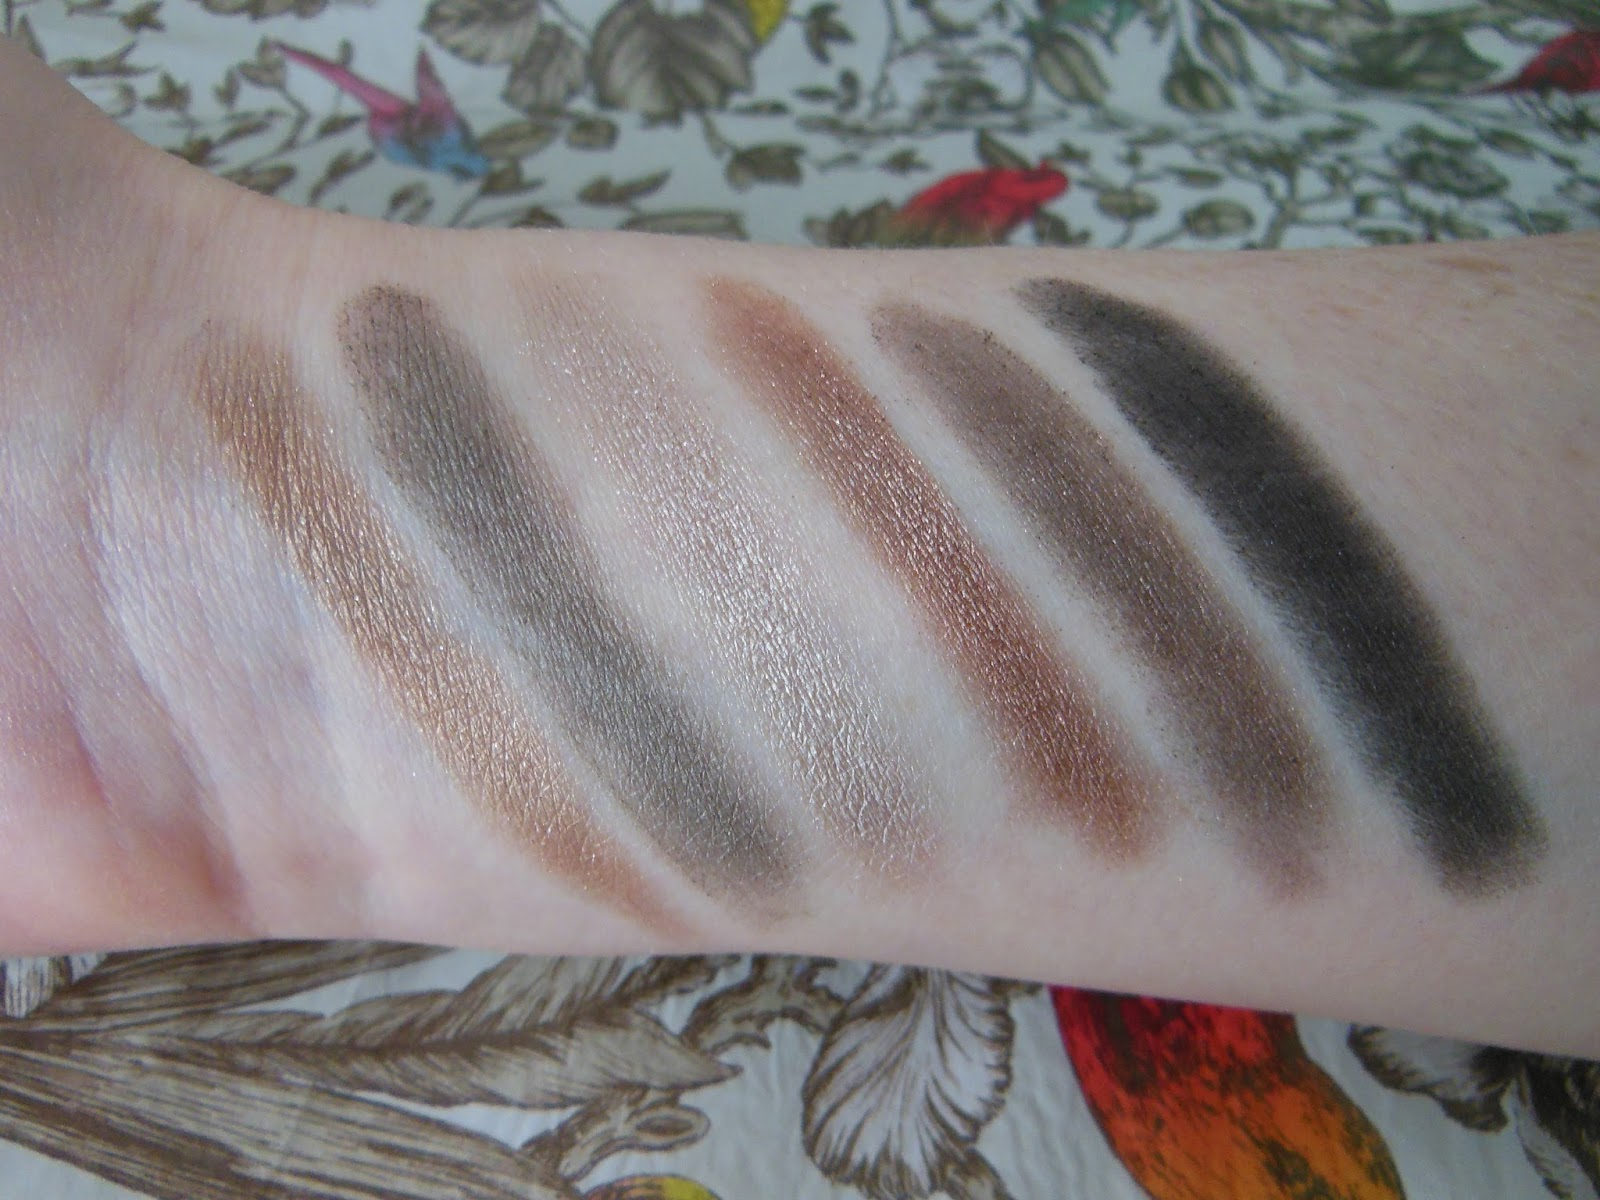 W7 in the buff eye shadow palette swatches